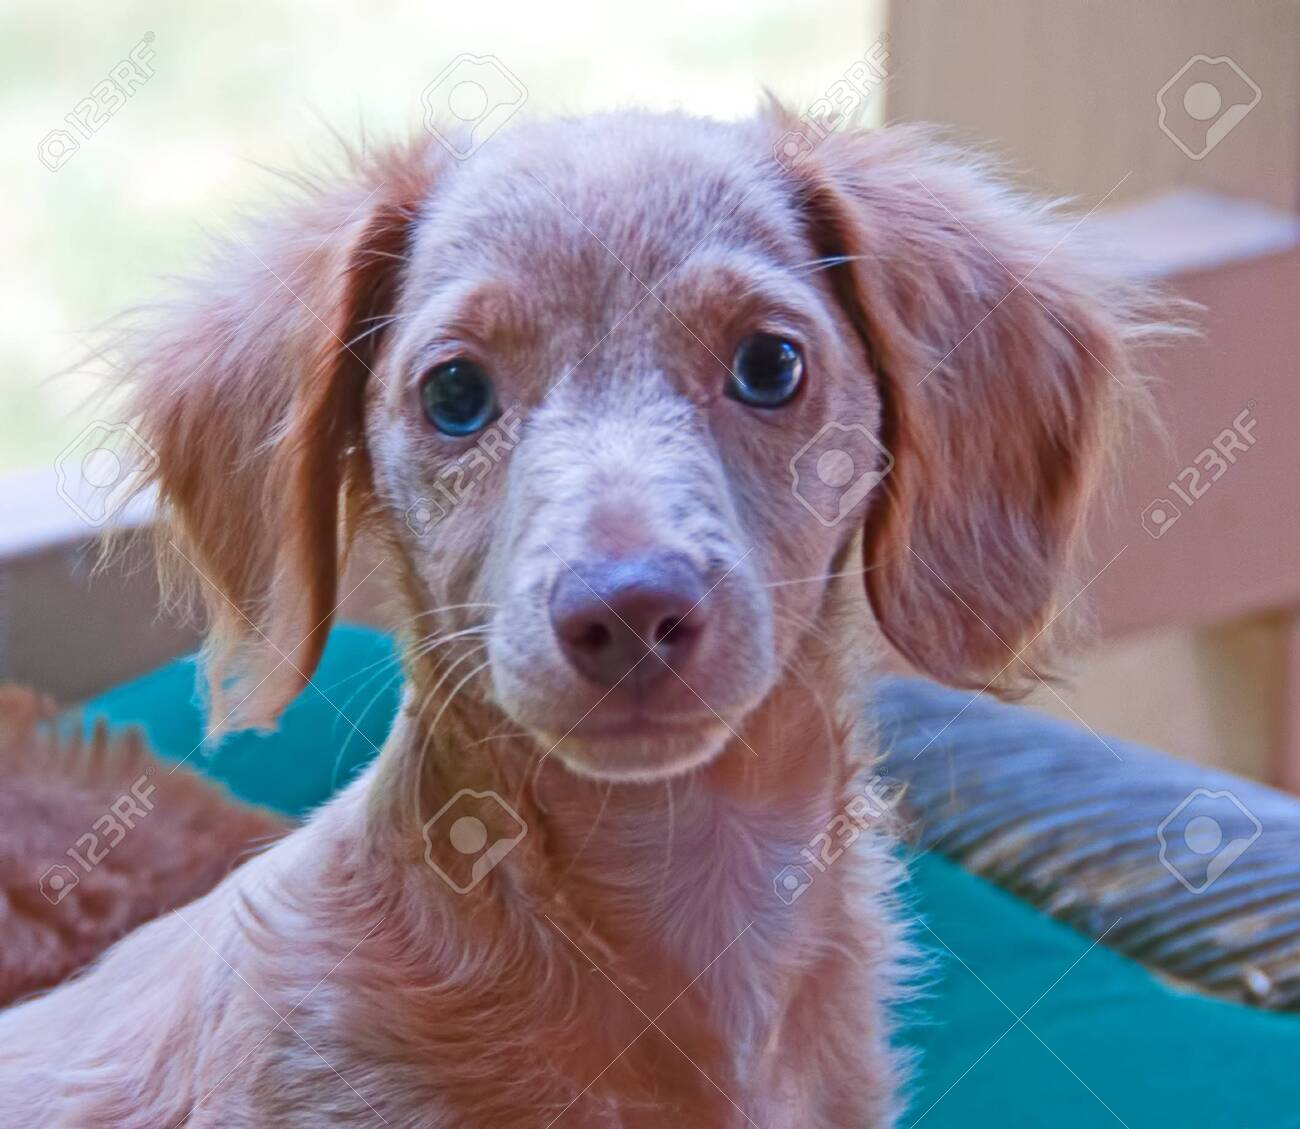 Photograph Of A Blonde Blue Eyed Longhair Dachshund Puppy Stock Photo Picture And Royalty Free Image Image 133032969